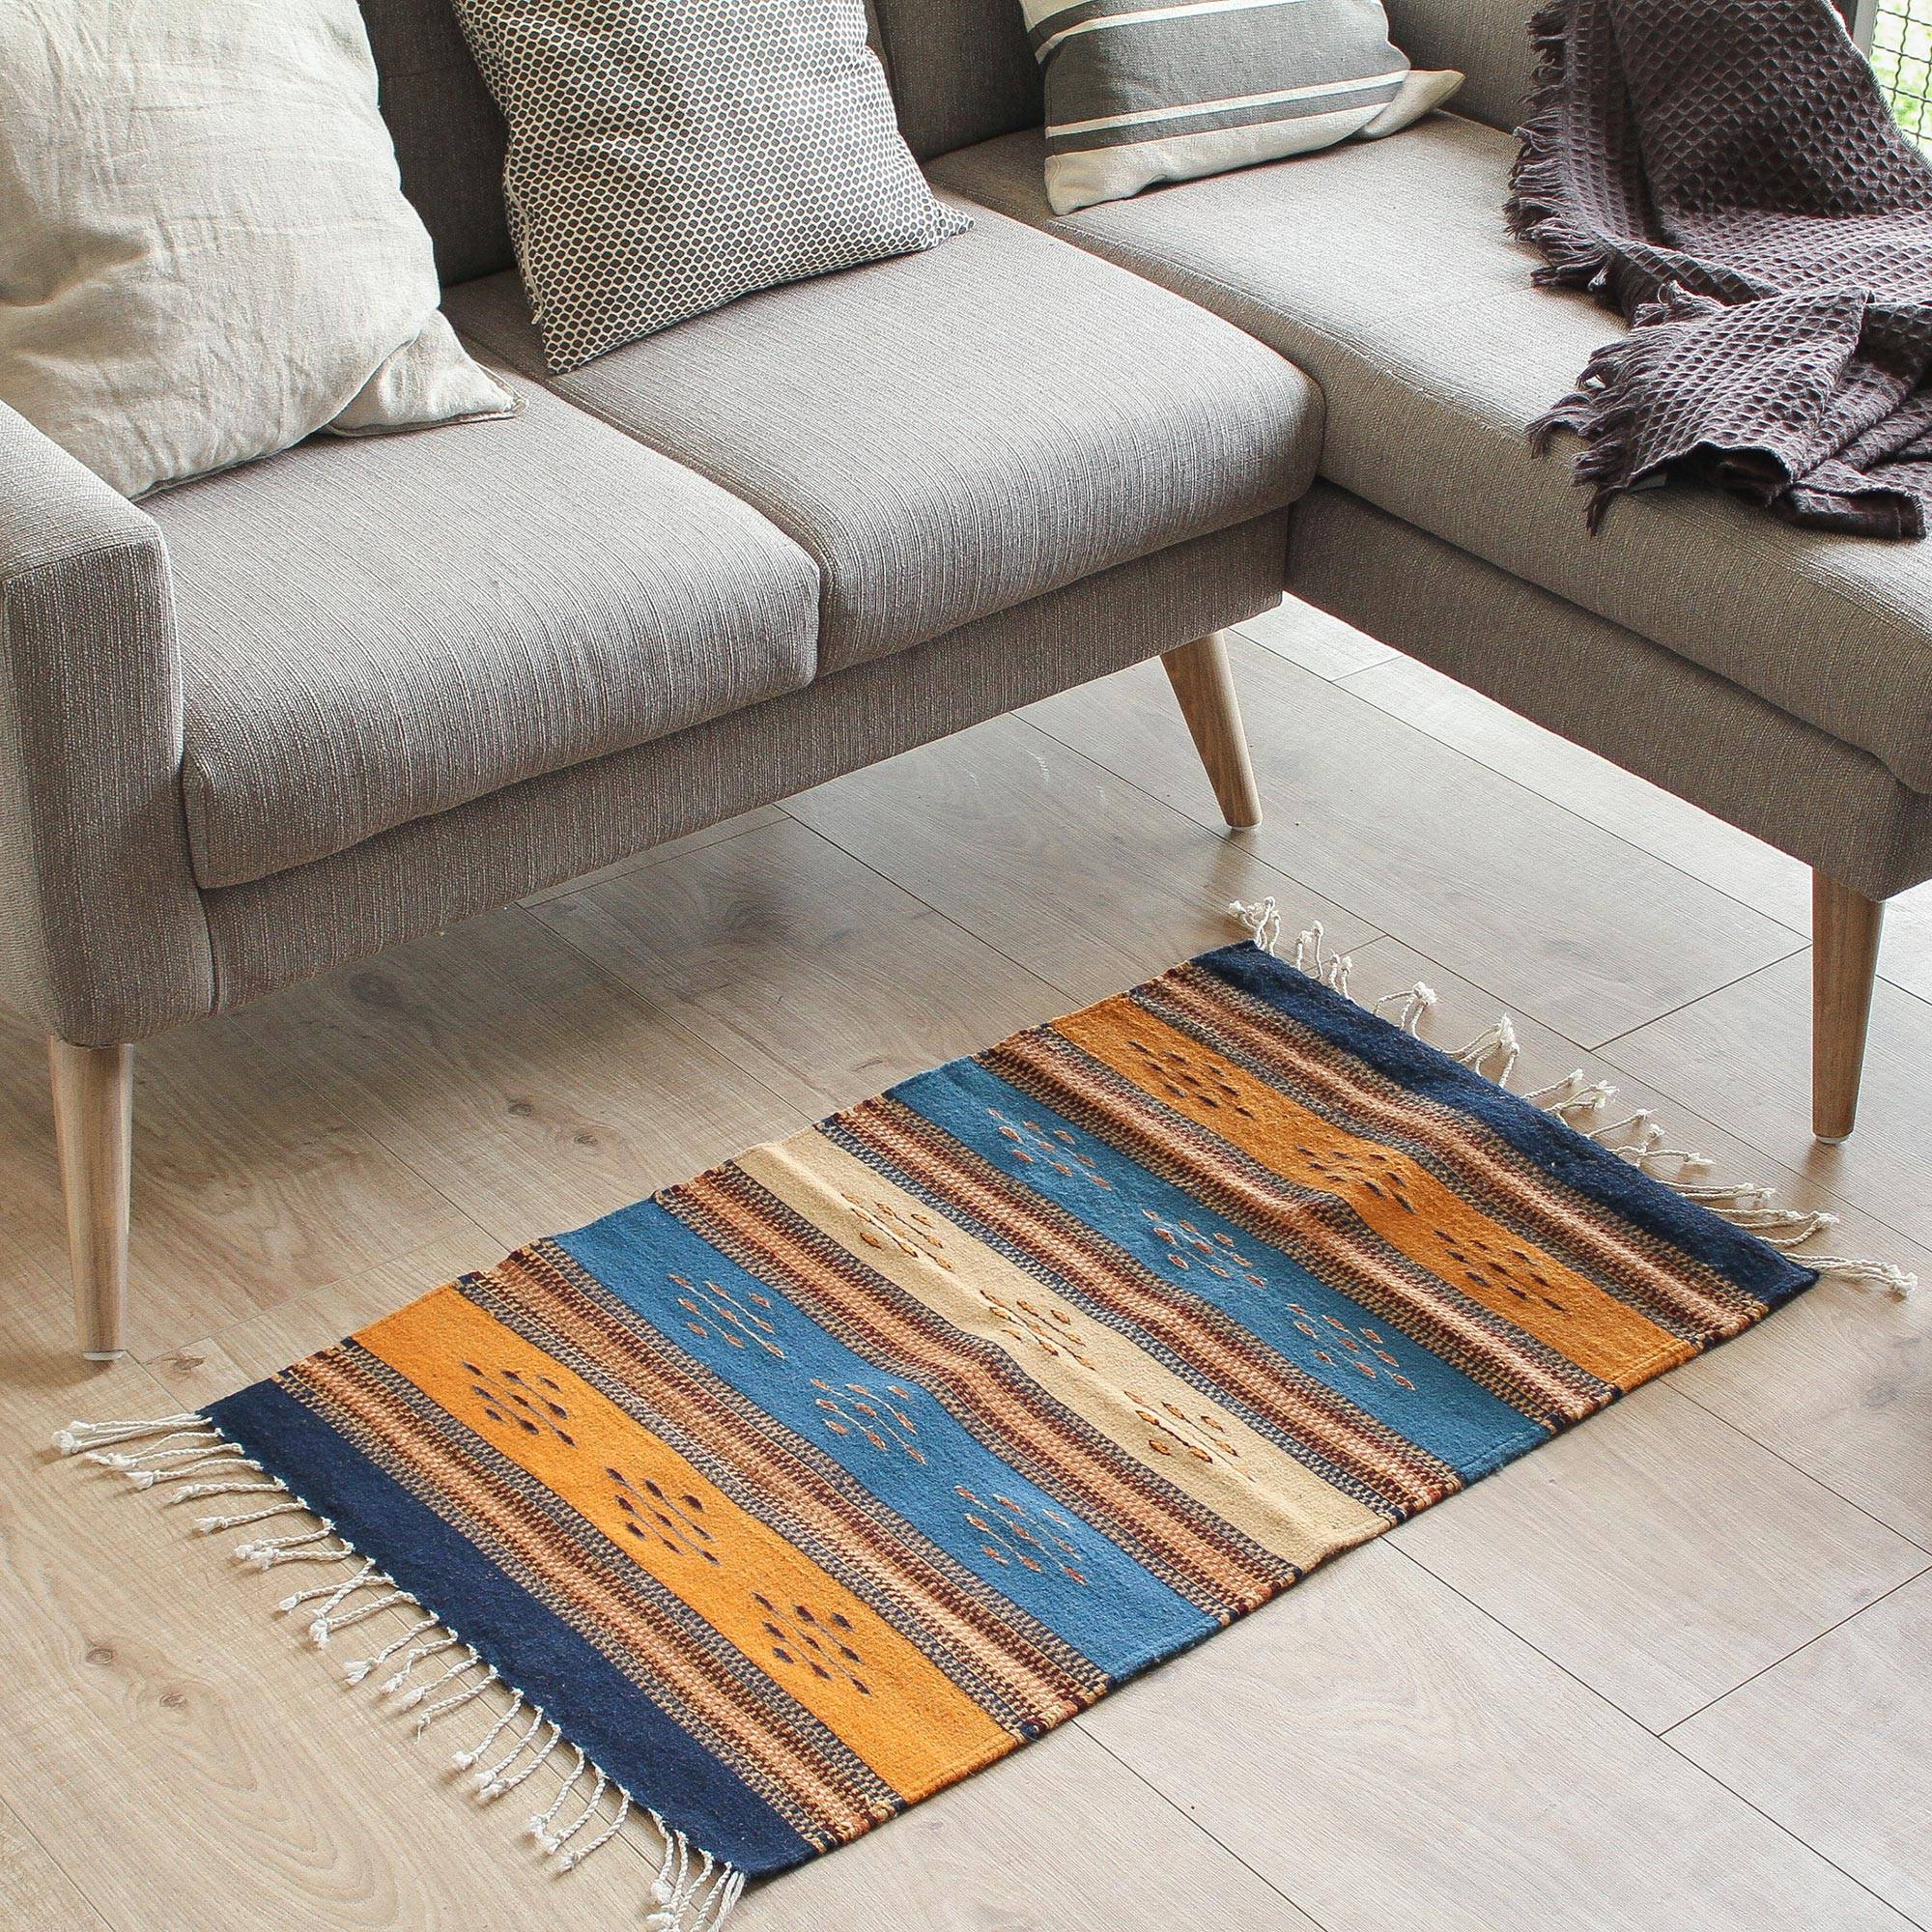 Handwoven 2x3 Wool Area Rug In Navy And Sunrise From Mexico Countryside Freedom